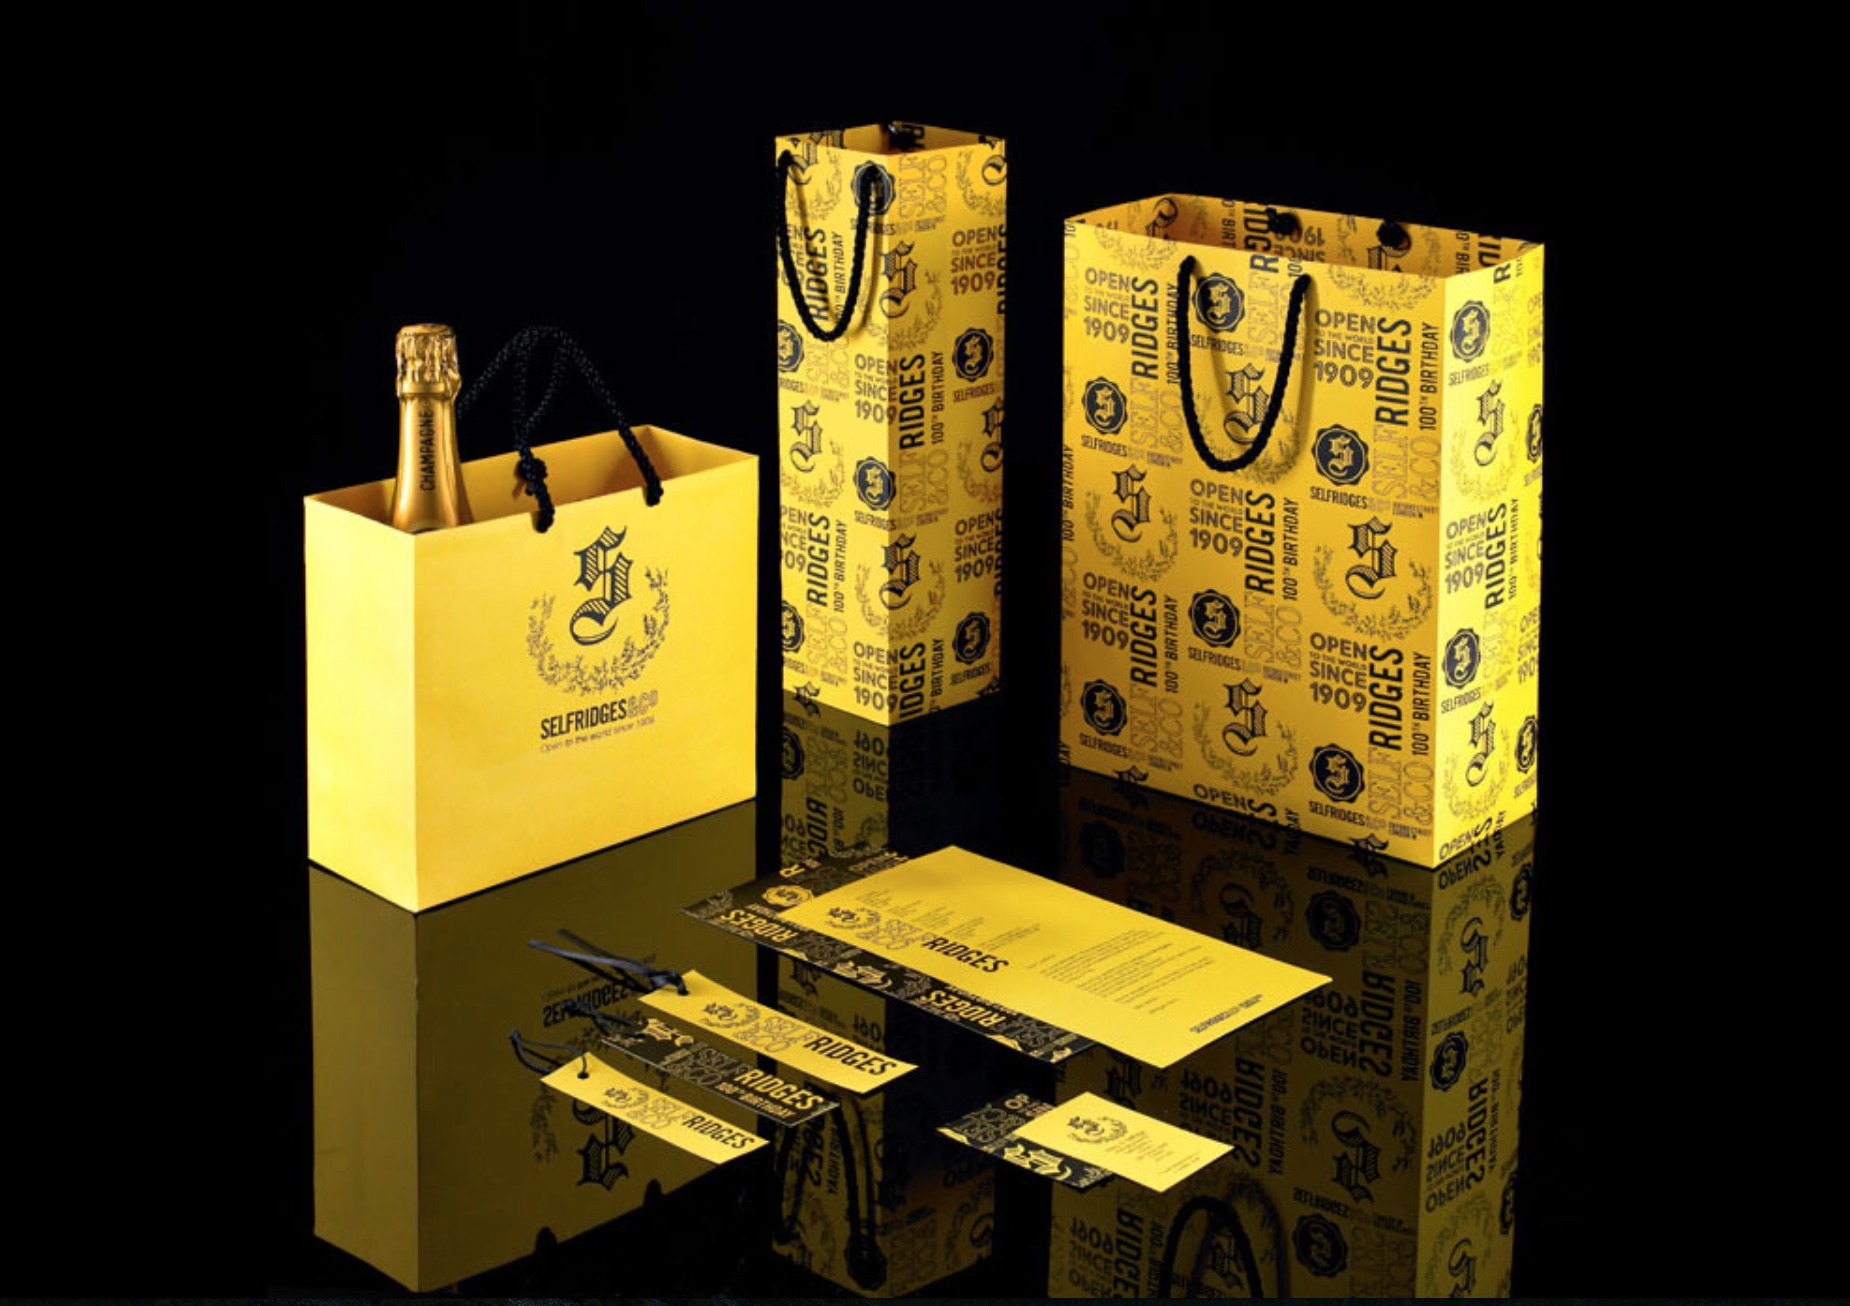 Selfridges branding and collateral